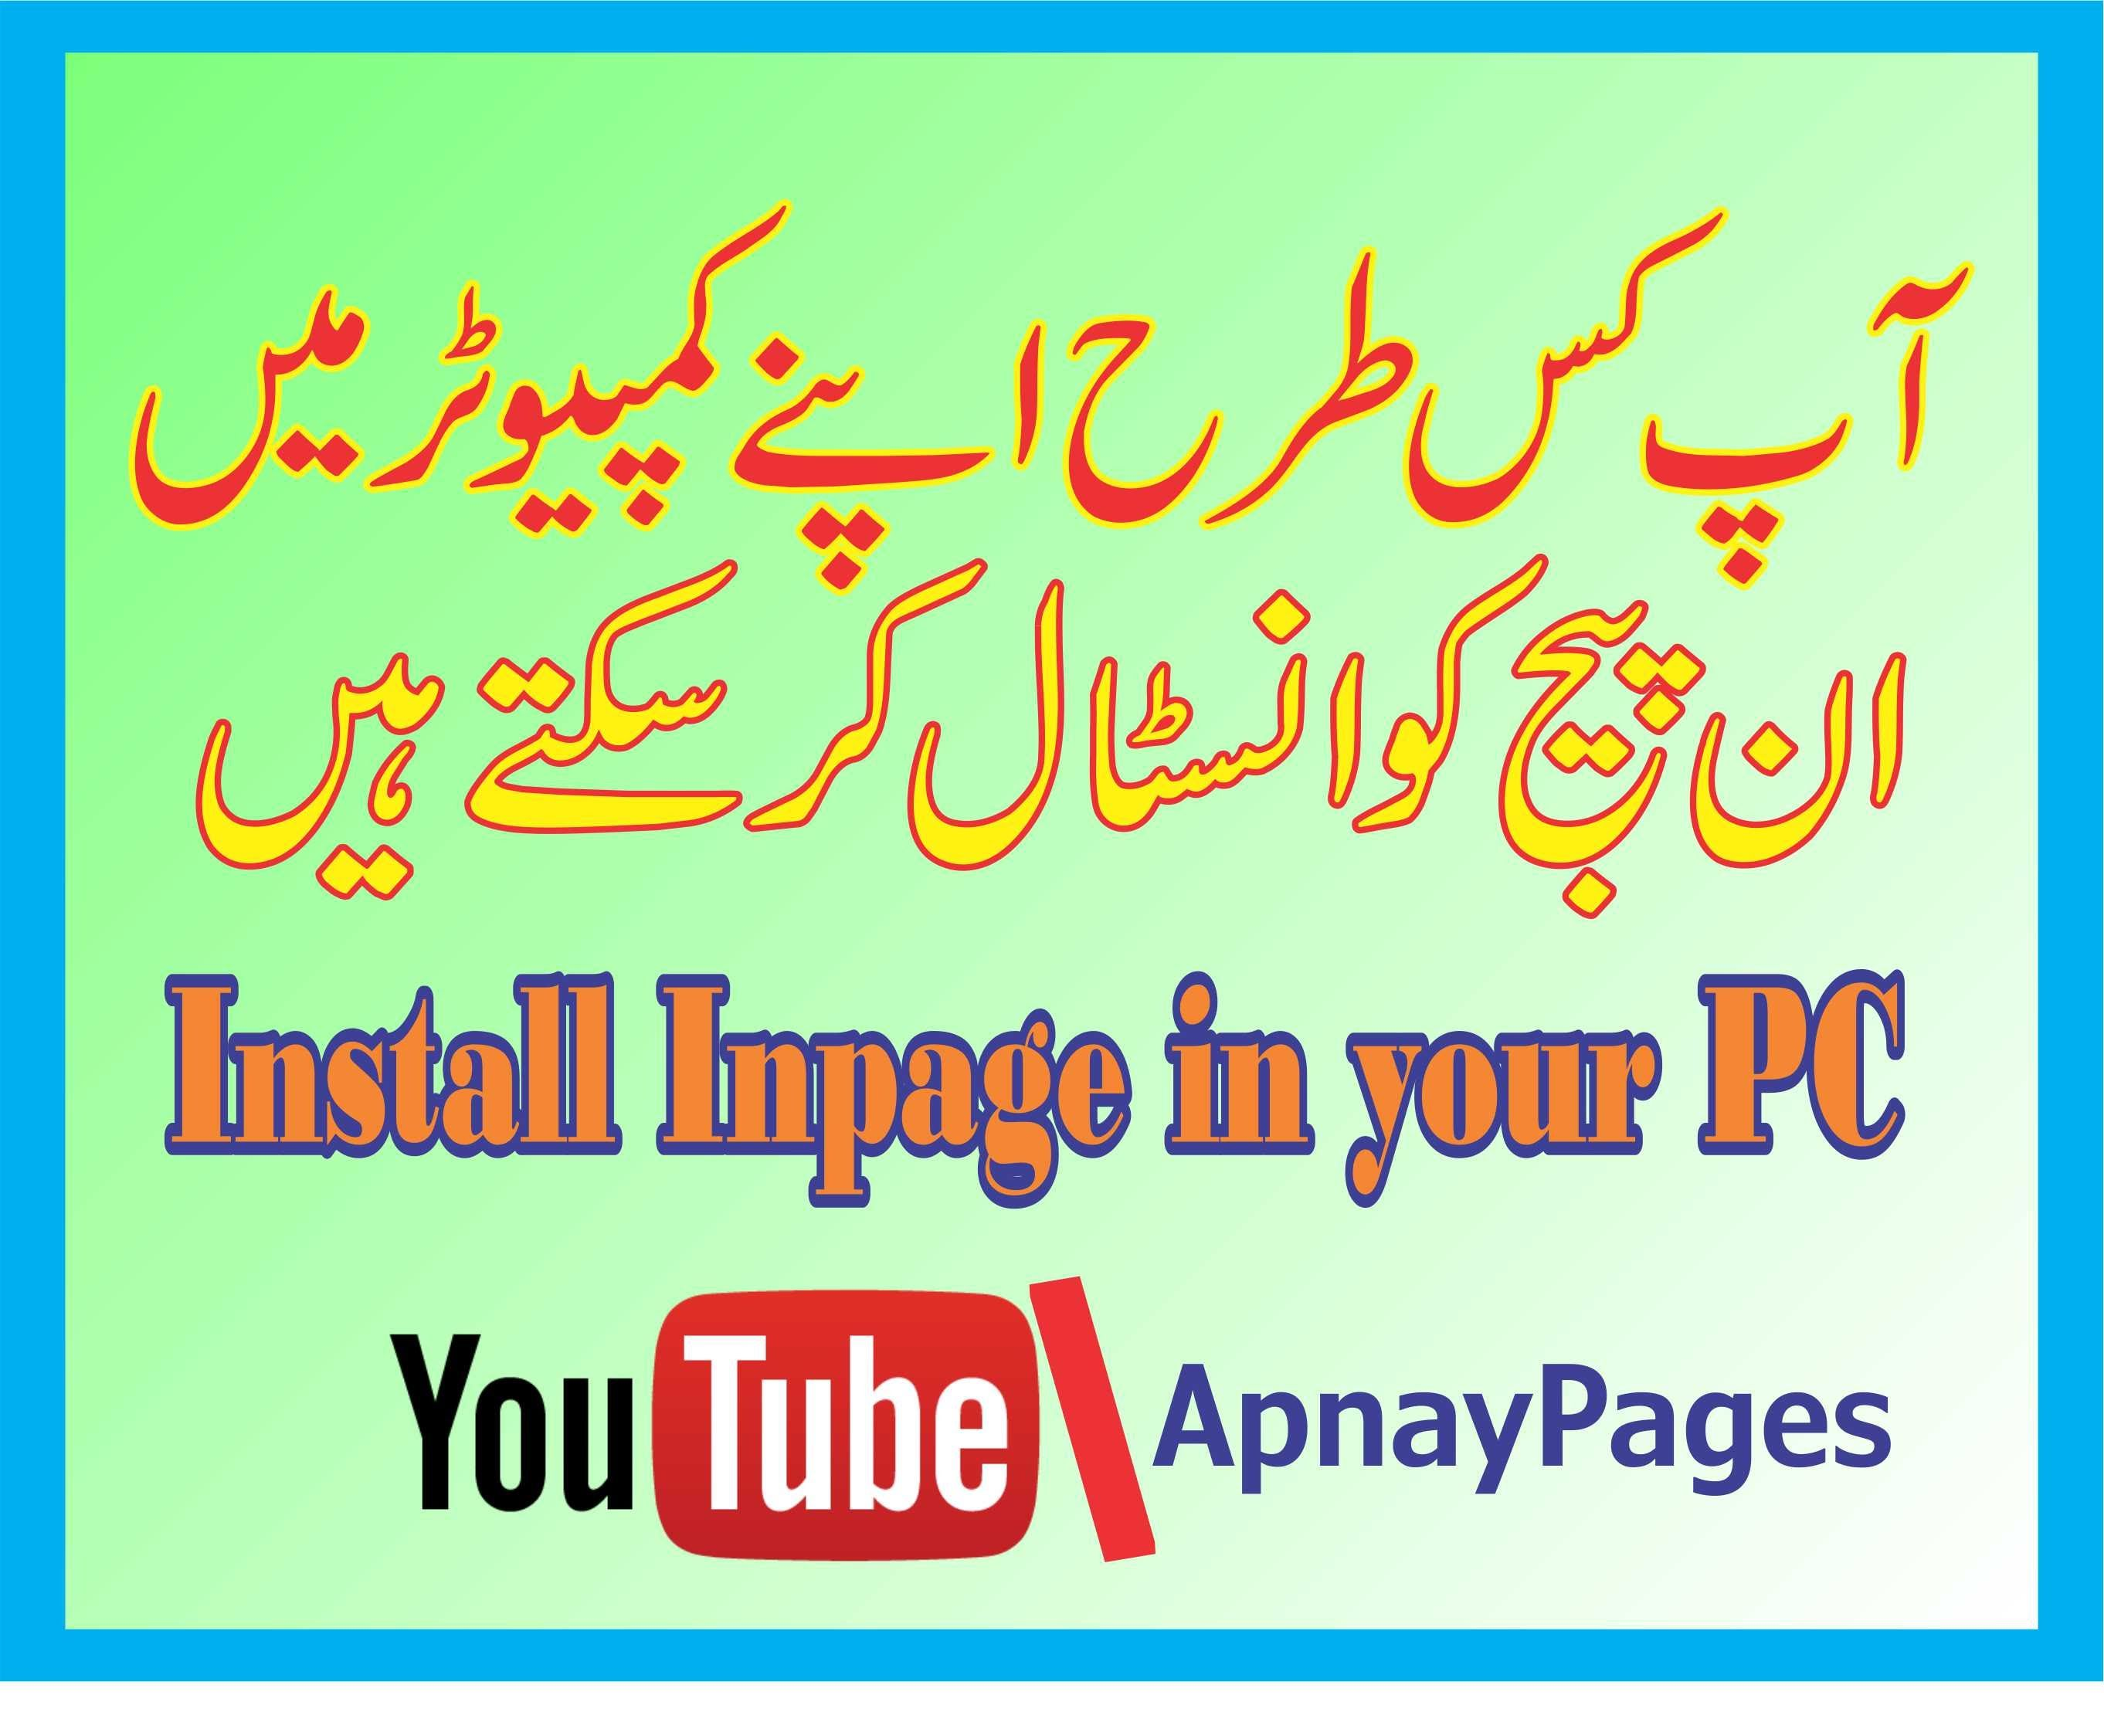 How to Install inpage in your laptop or computer by using